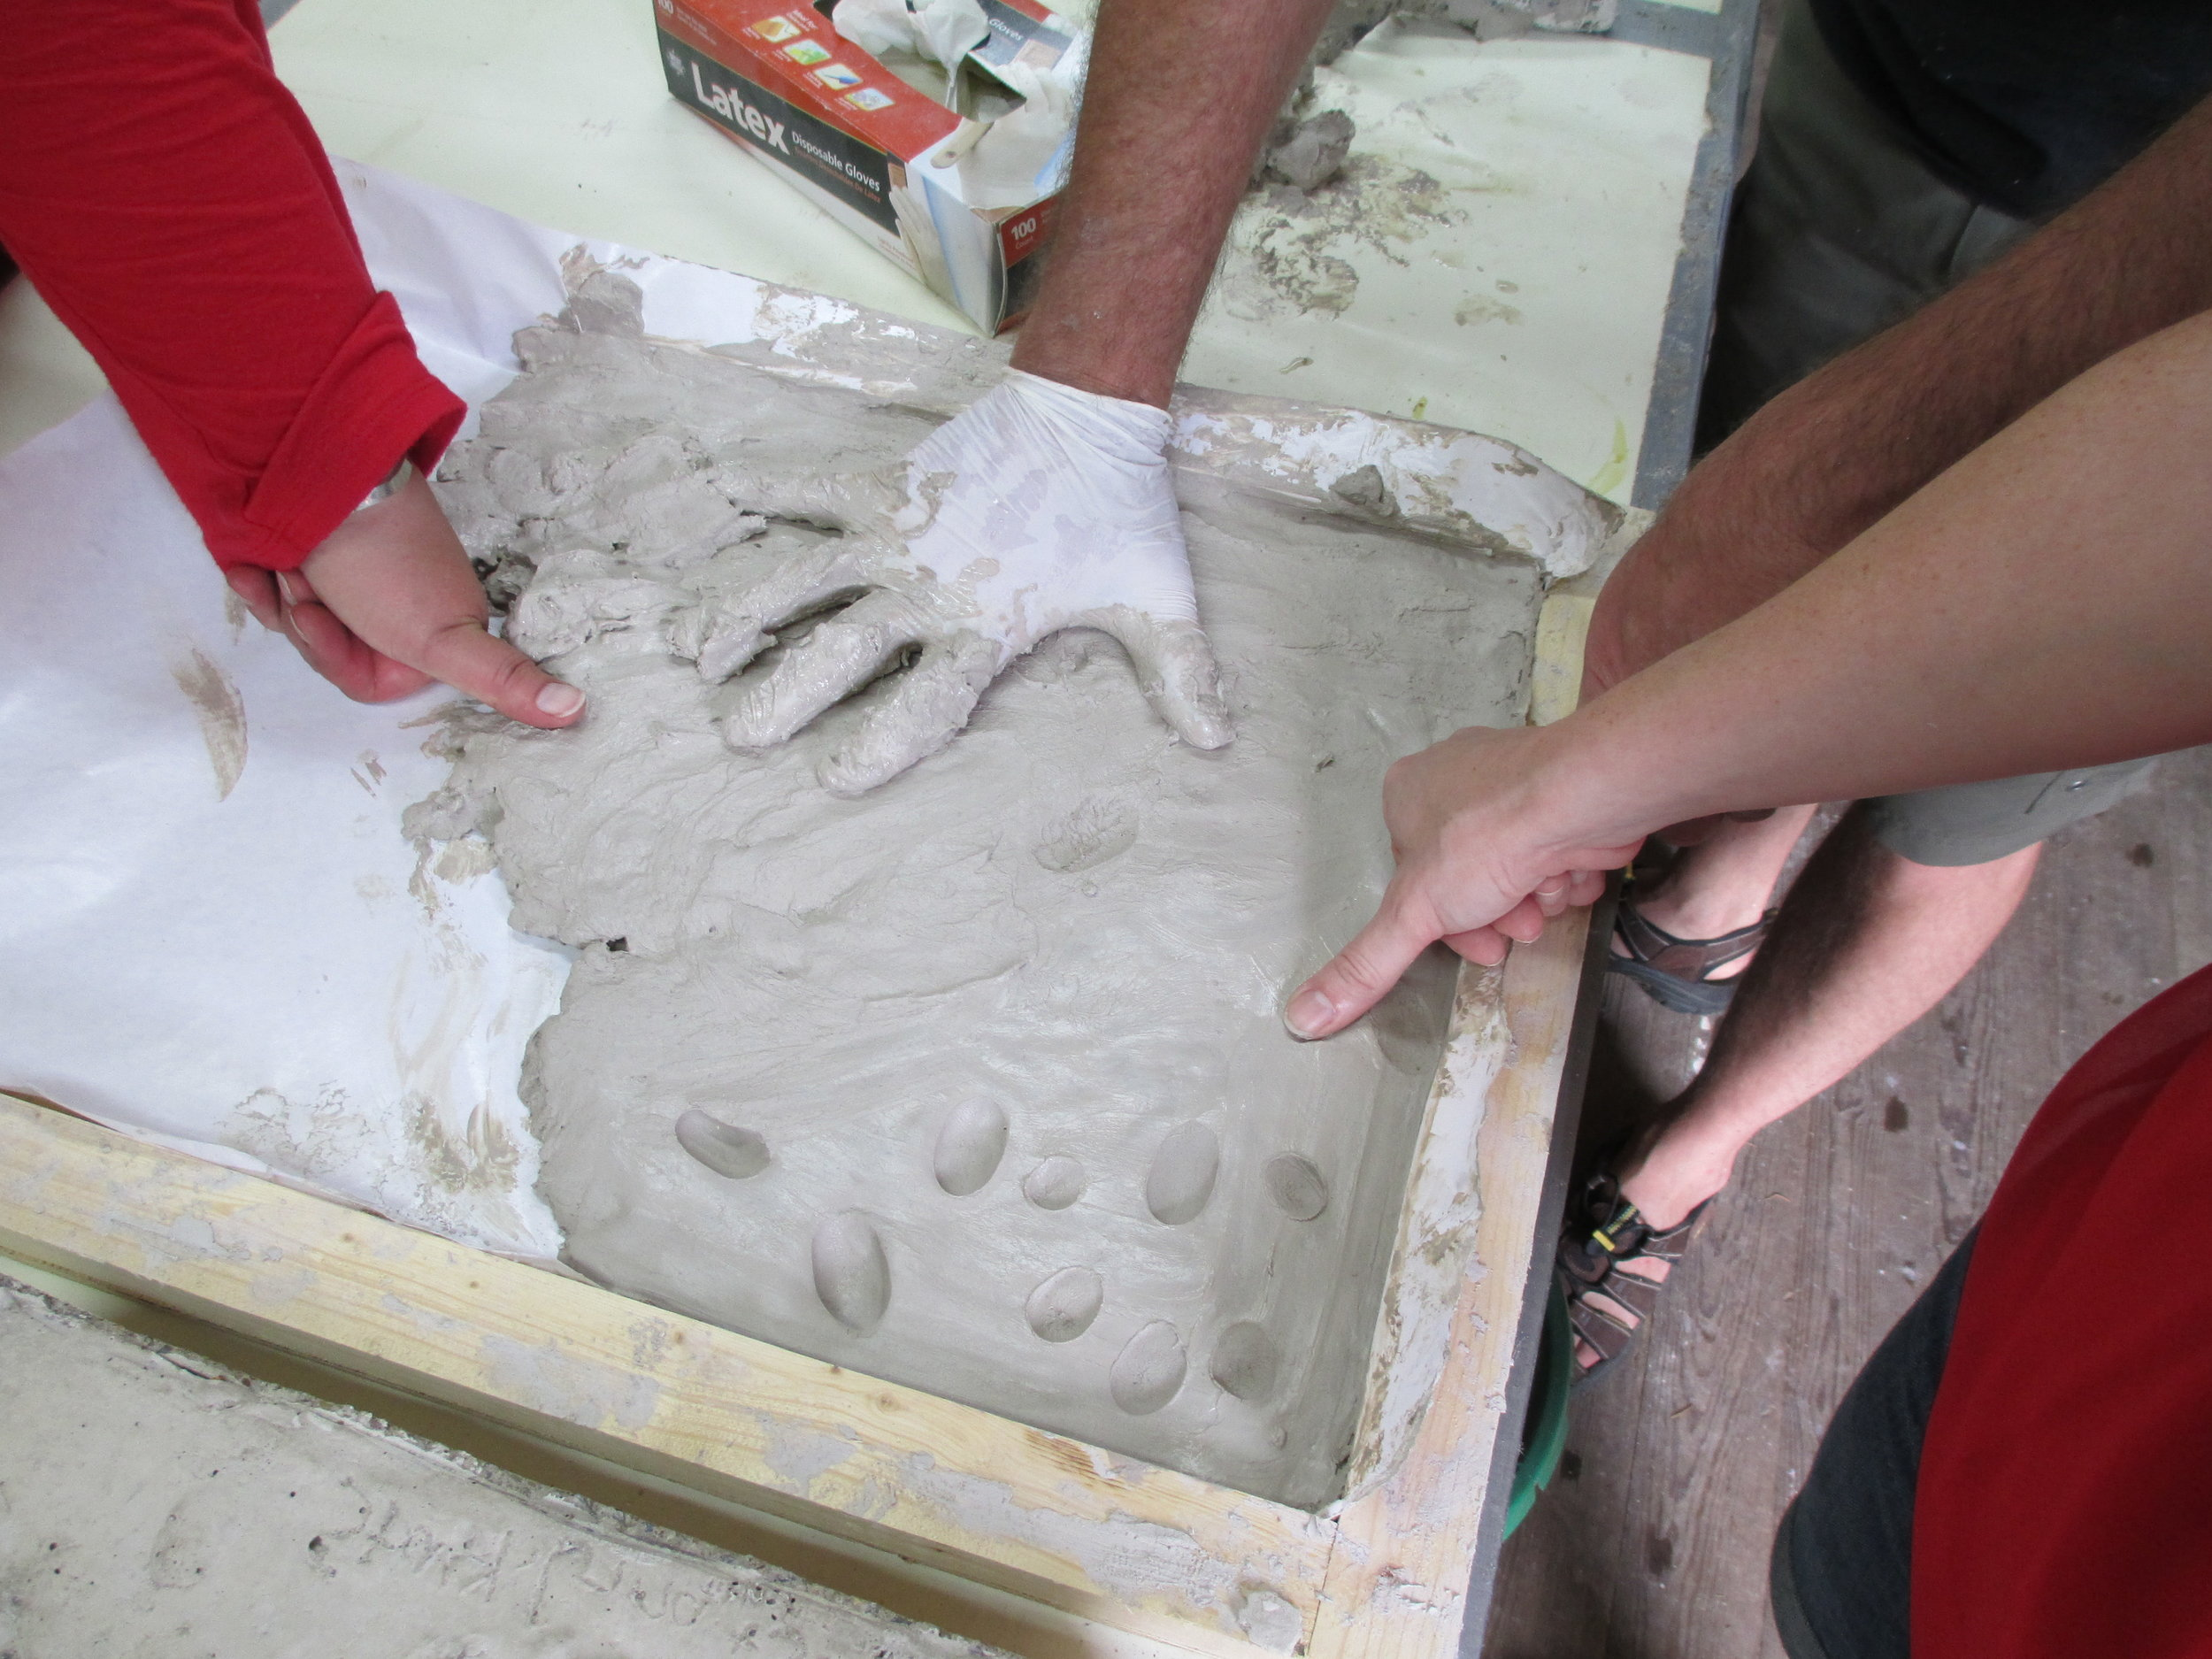 05a_hands in clay.JPG